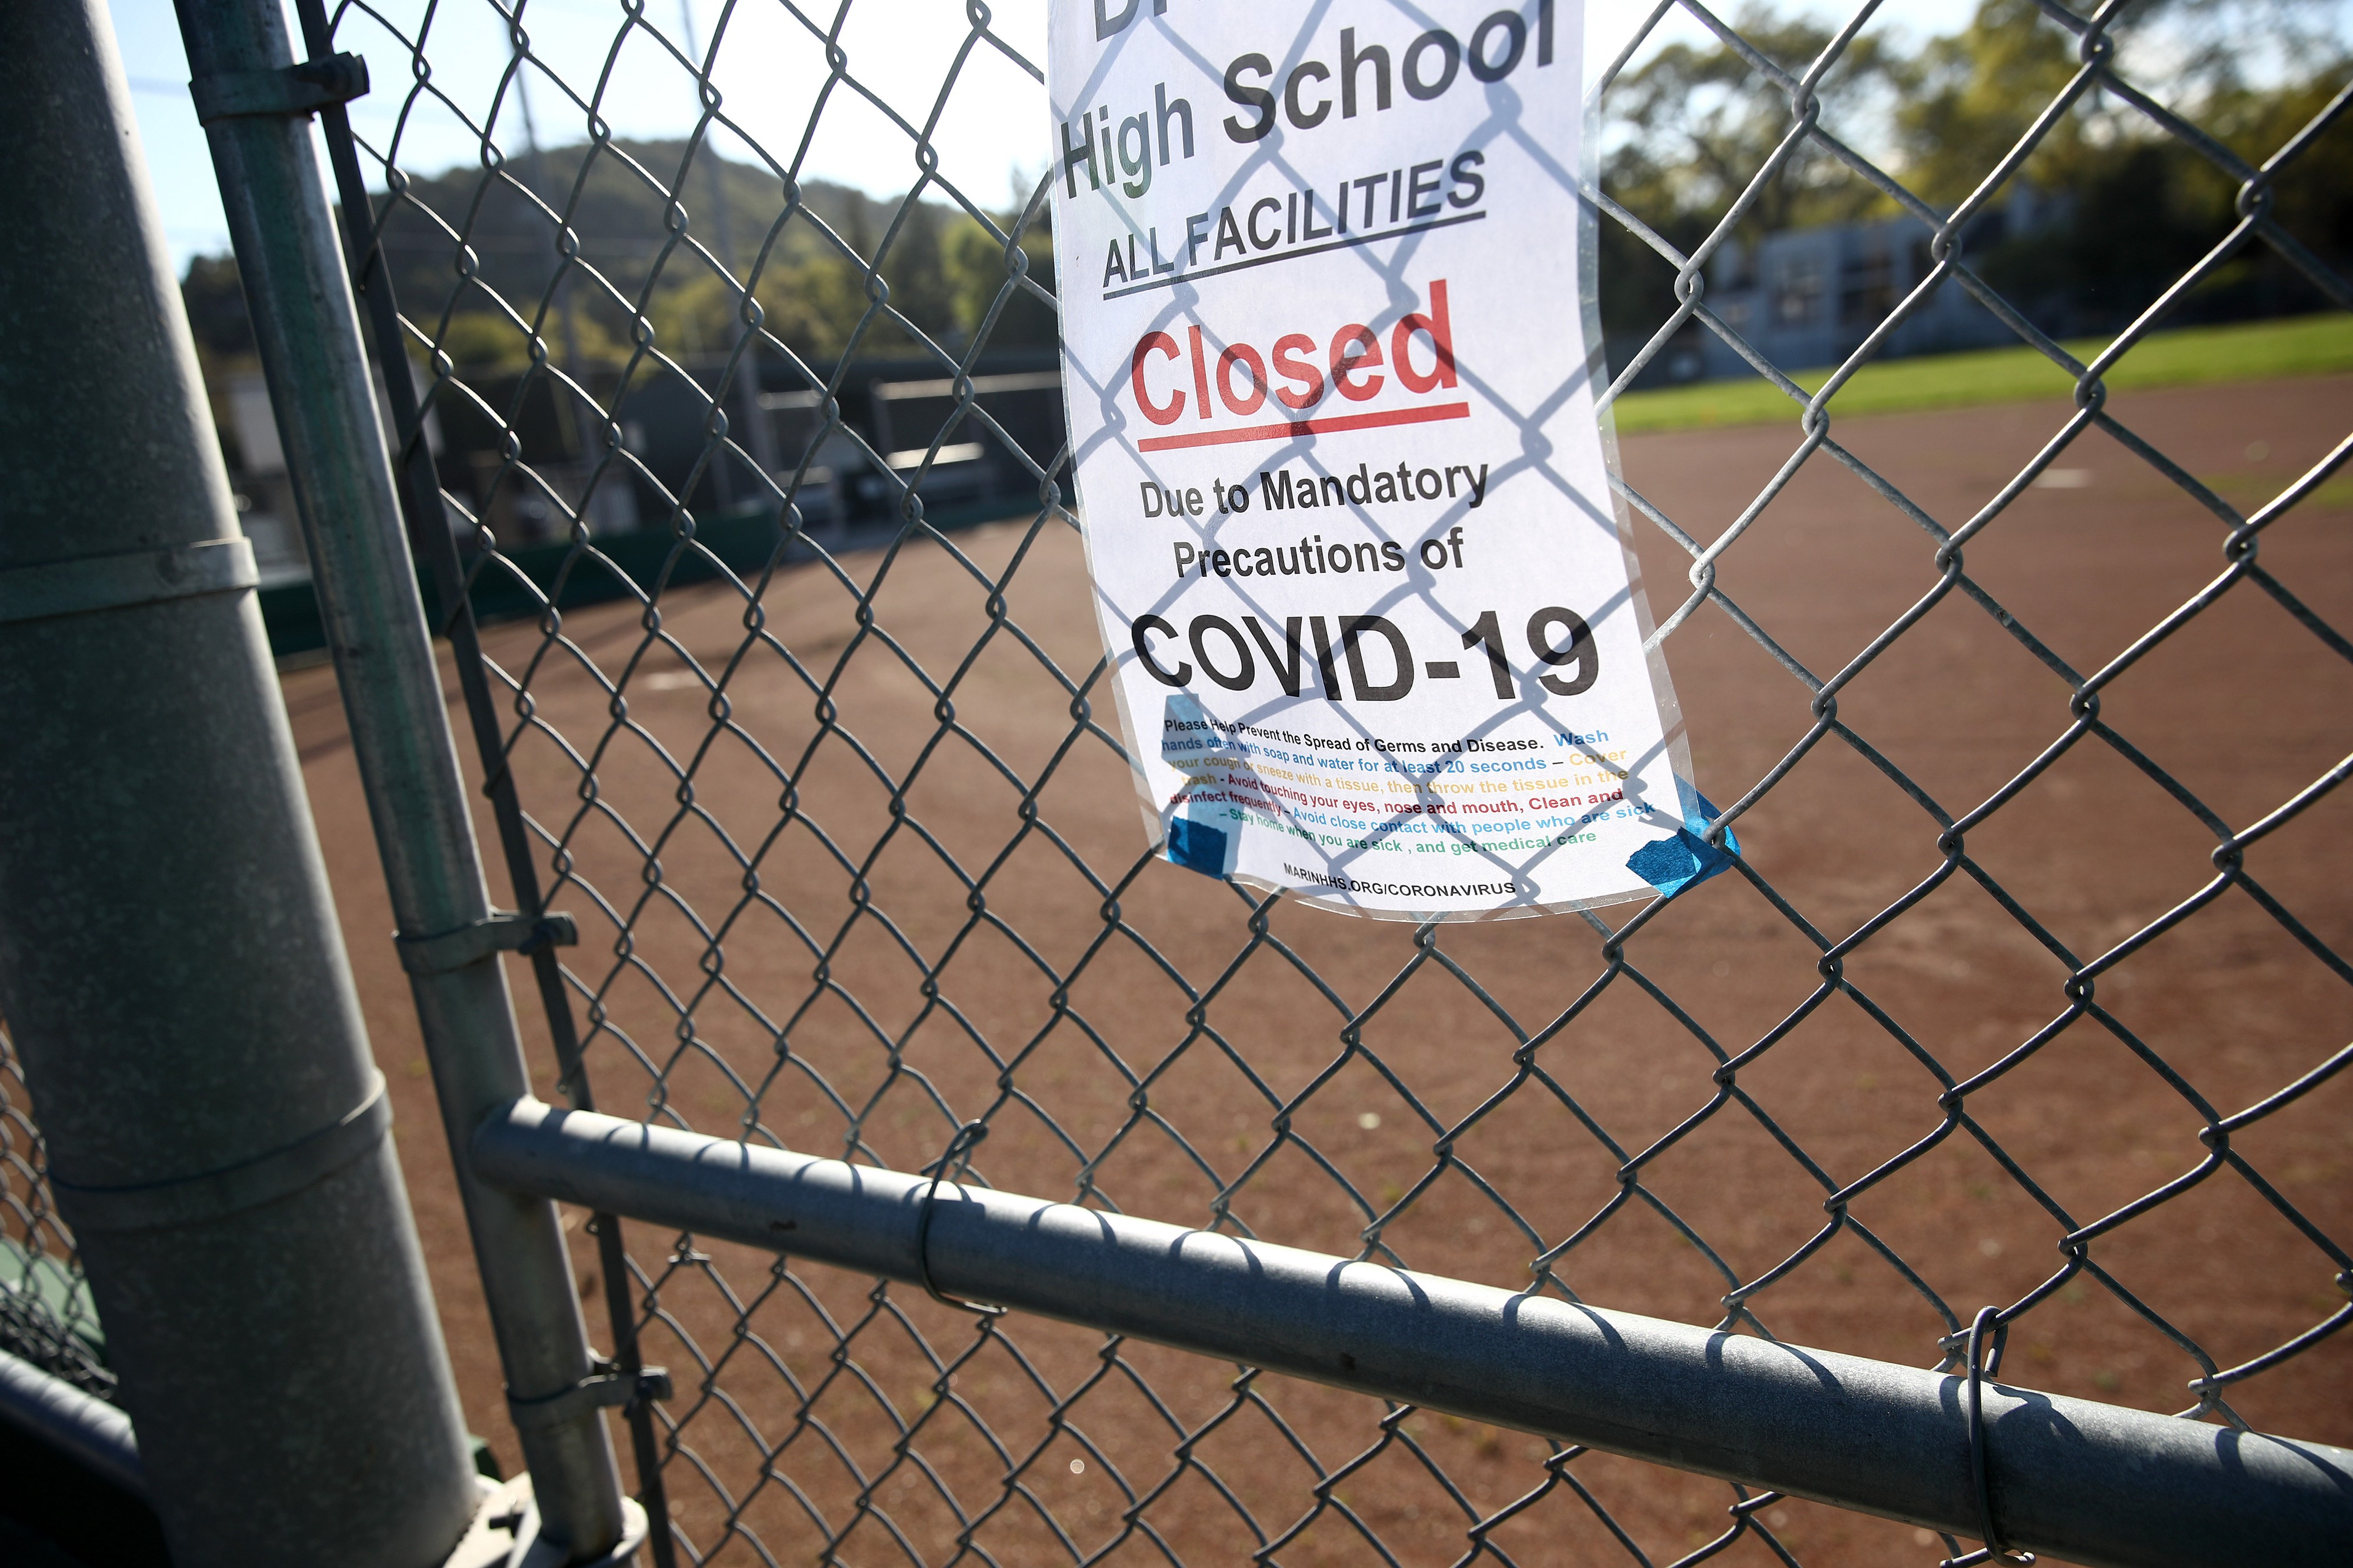 """Sign taped to chain linked fence that reads """"High School and Facilities Closed Due to Mandatory Precautions of COVID-19."""""""